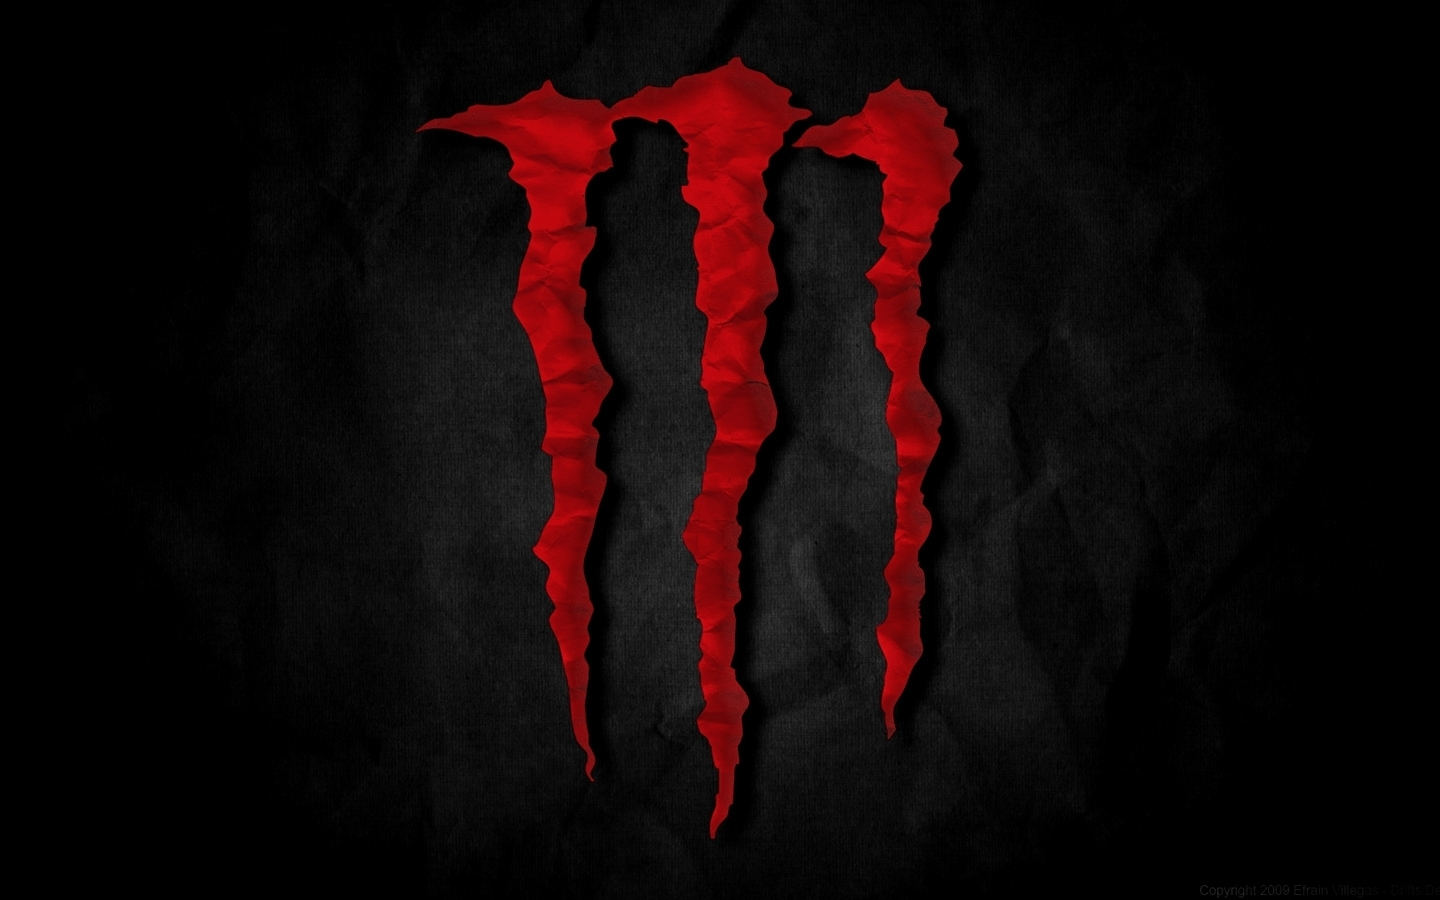 monster energy 1440x900 wallpaper high quality wallpapers,high